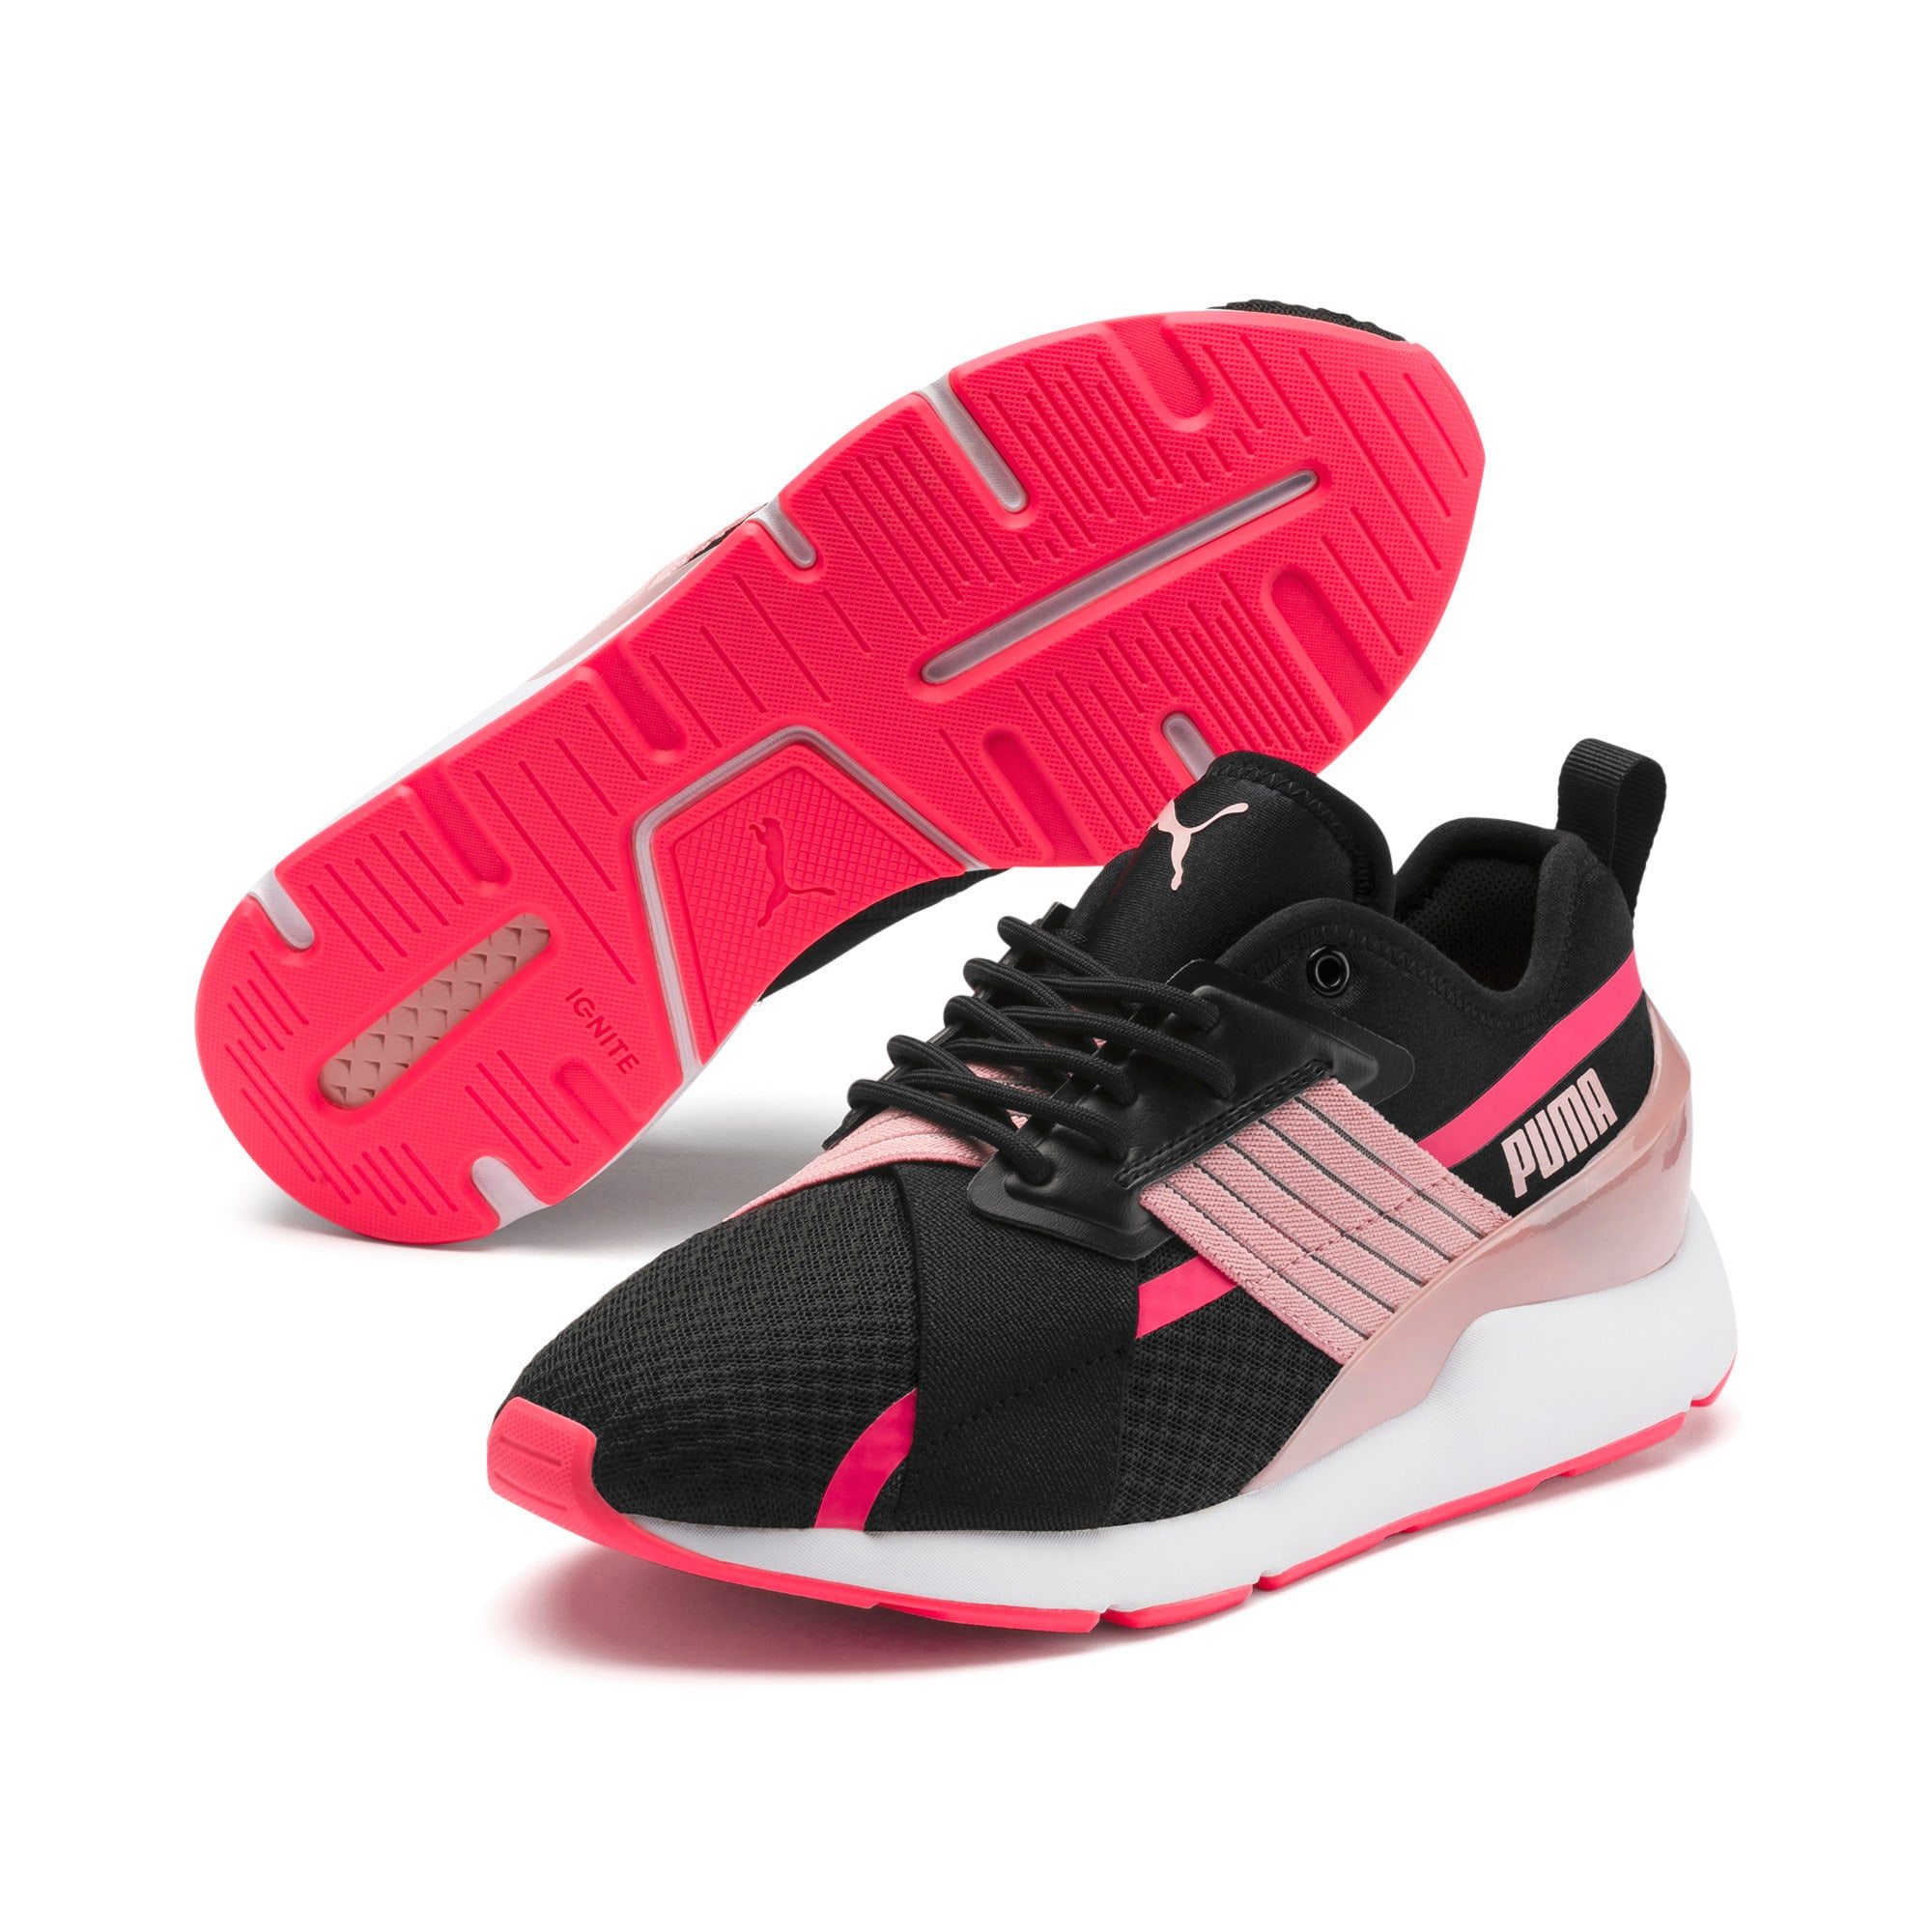 Thumbnail 3 of Muse X-2 Women's Sneakers, Puma Black-Bridal Rose, medium